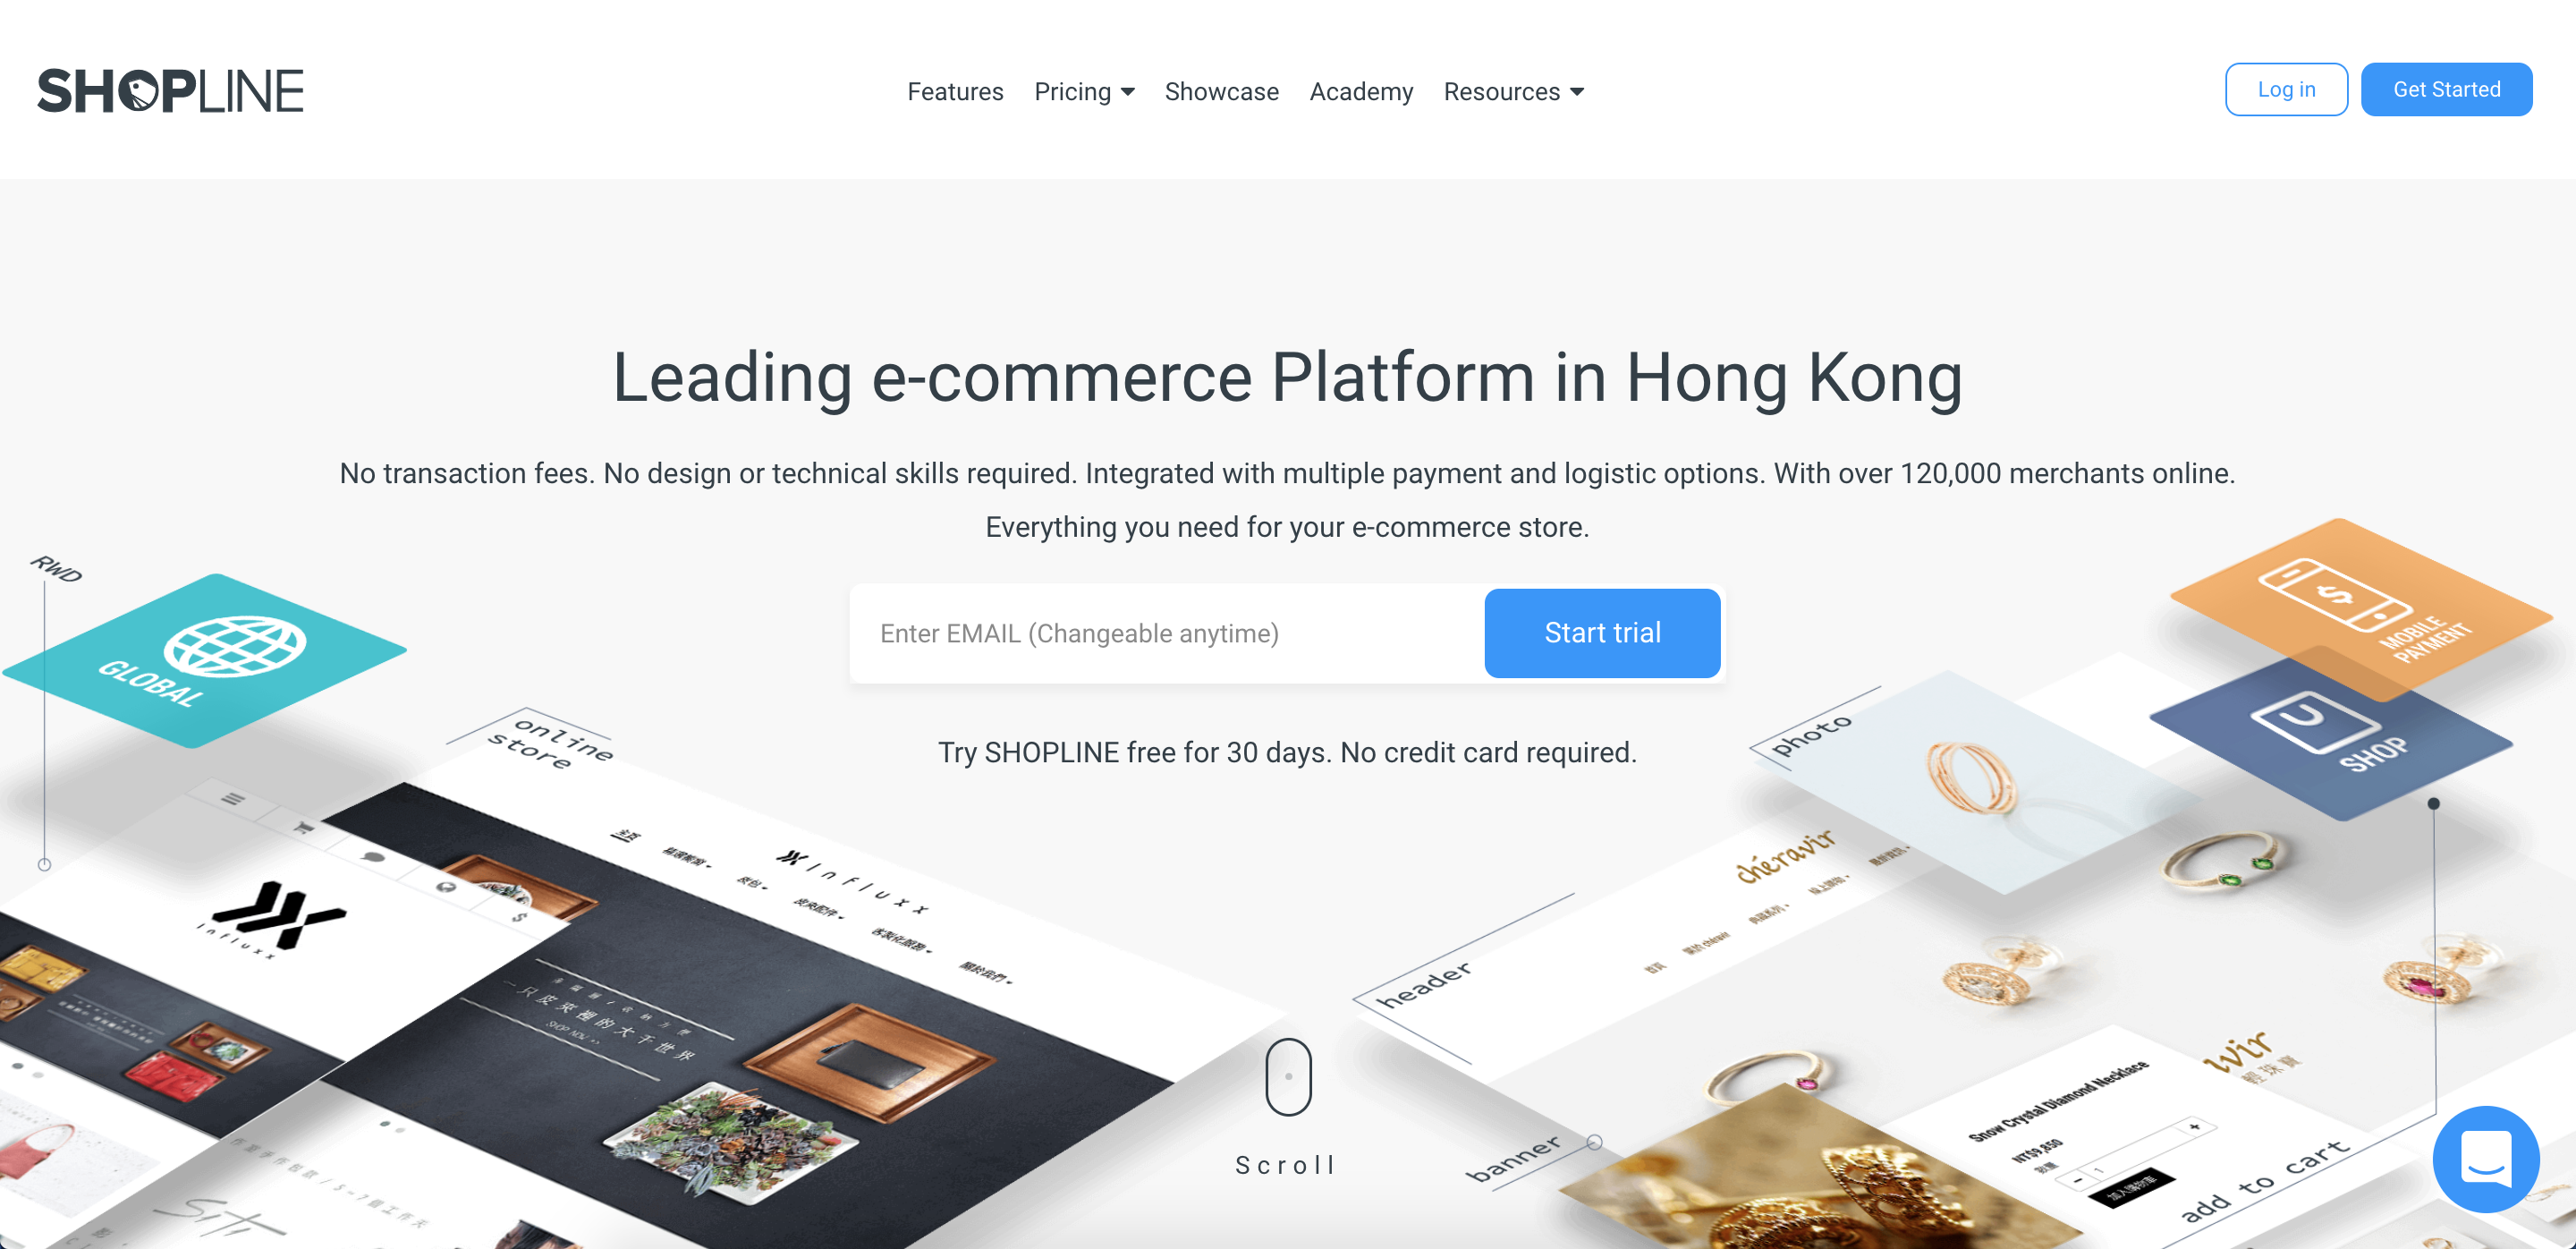 How to Start your eCommerce Business in Hong Kong